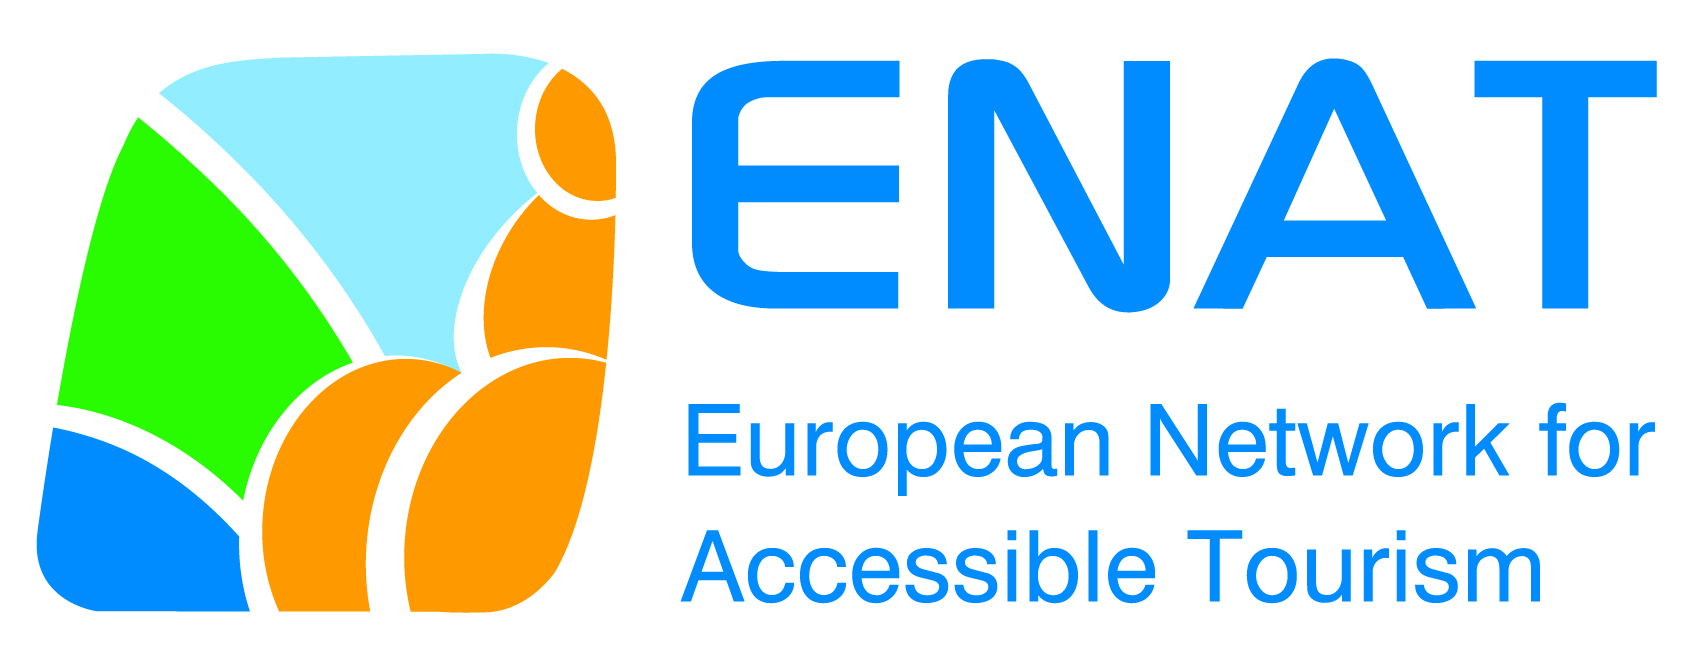 ENAT European Network for Accessible Tourism